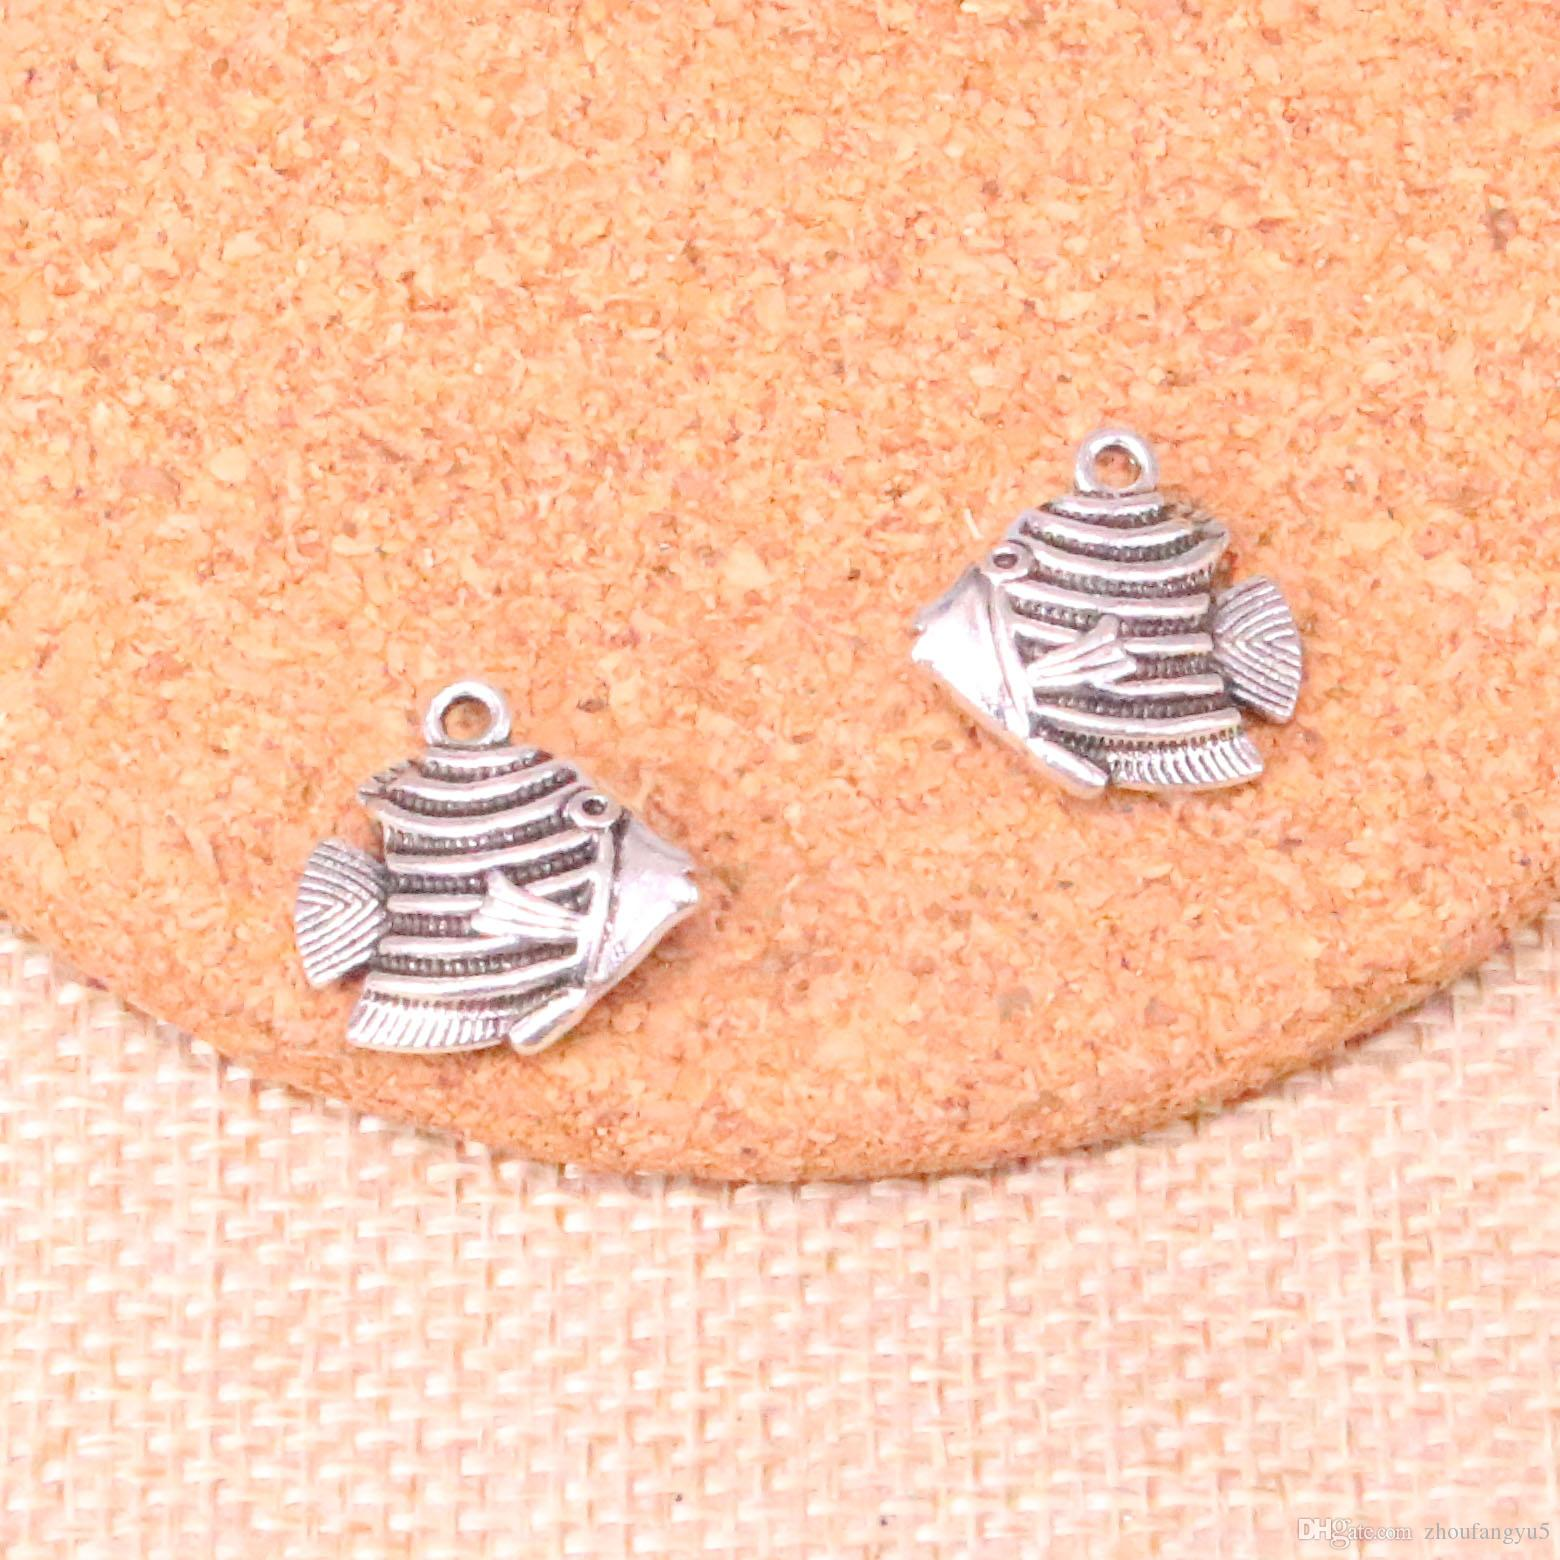 36pcs Charms goldfish fish 18*18mm Antique Making pendant fit,Vintage Tibetan Silver,DIY Handmade Jewelry